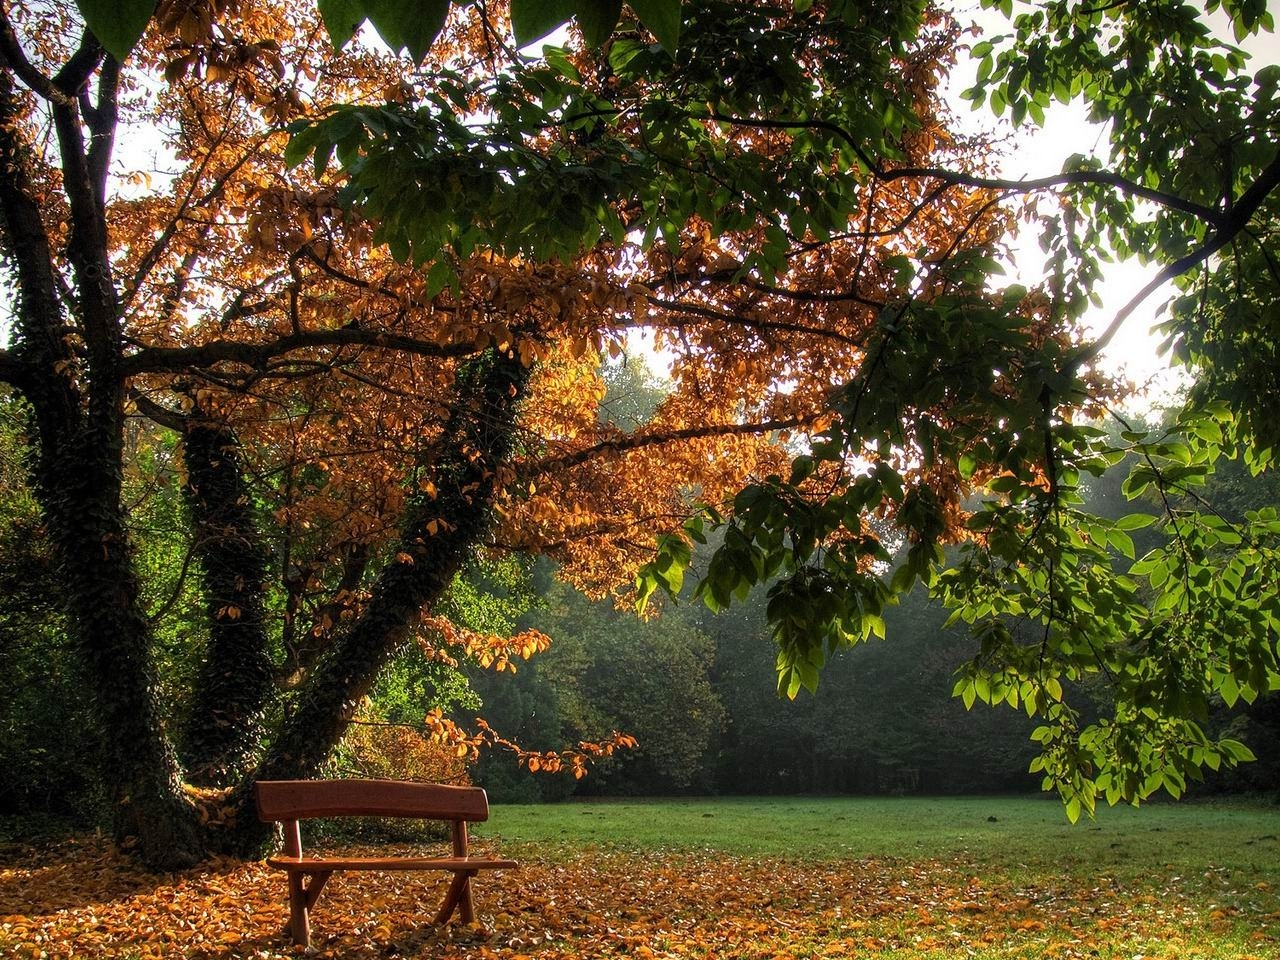 30642 download wallpaper Landscape, Trees, Autumn screensavers and pictures for free